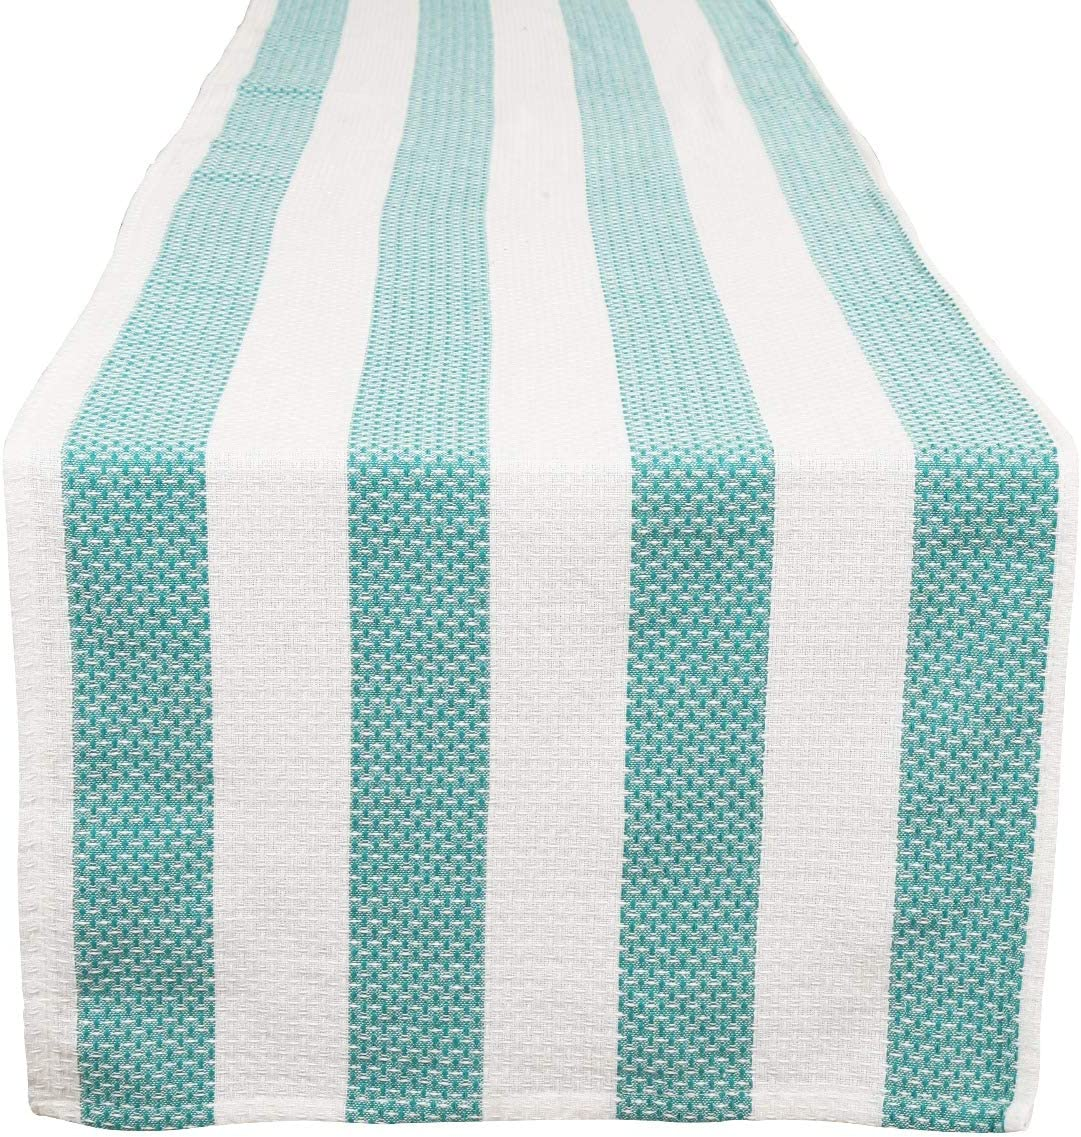 Ramanta Home Vintage Stripe Cotton Table Runner 72 Inch, for Family Gatherings or Dinners, Indoor/Outdoor, Everyday Use, Machine Washable, 16x72 Teal